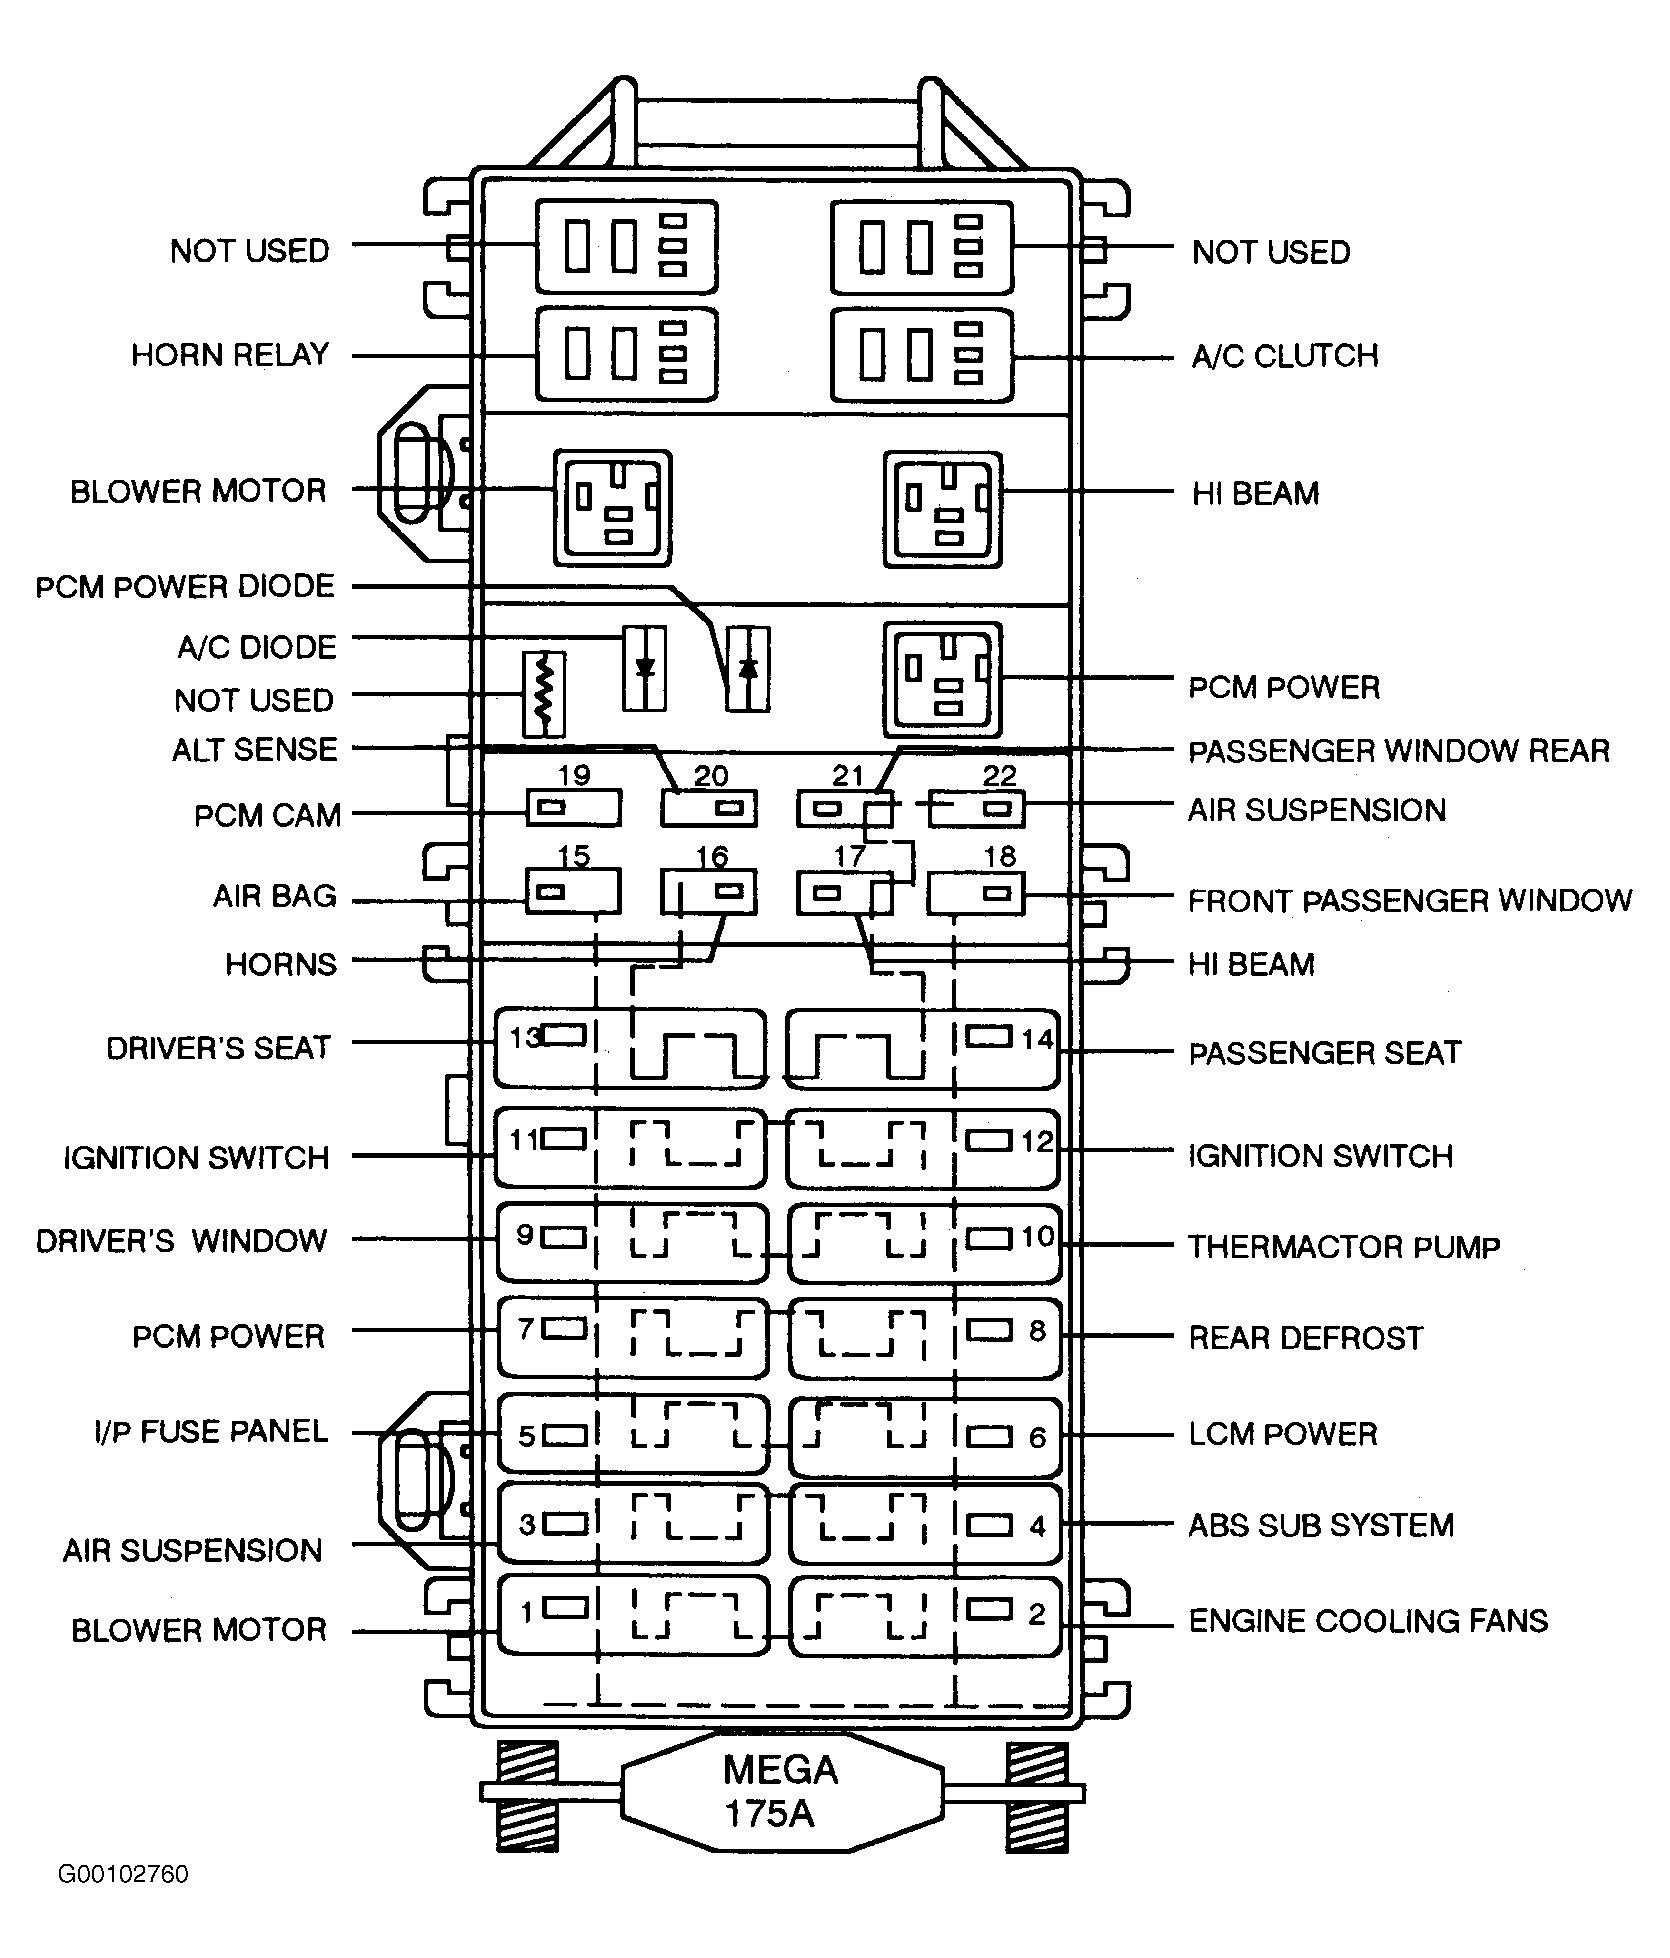 2005 lincoln town car fuse box diagram